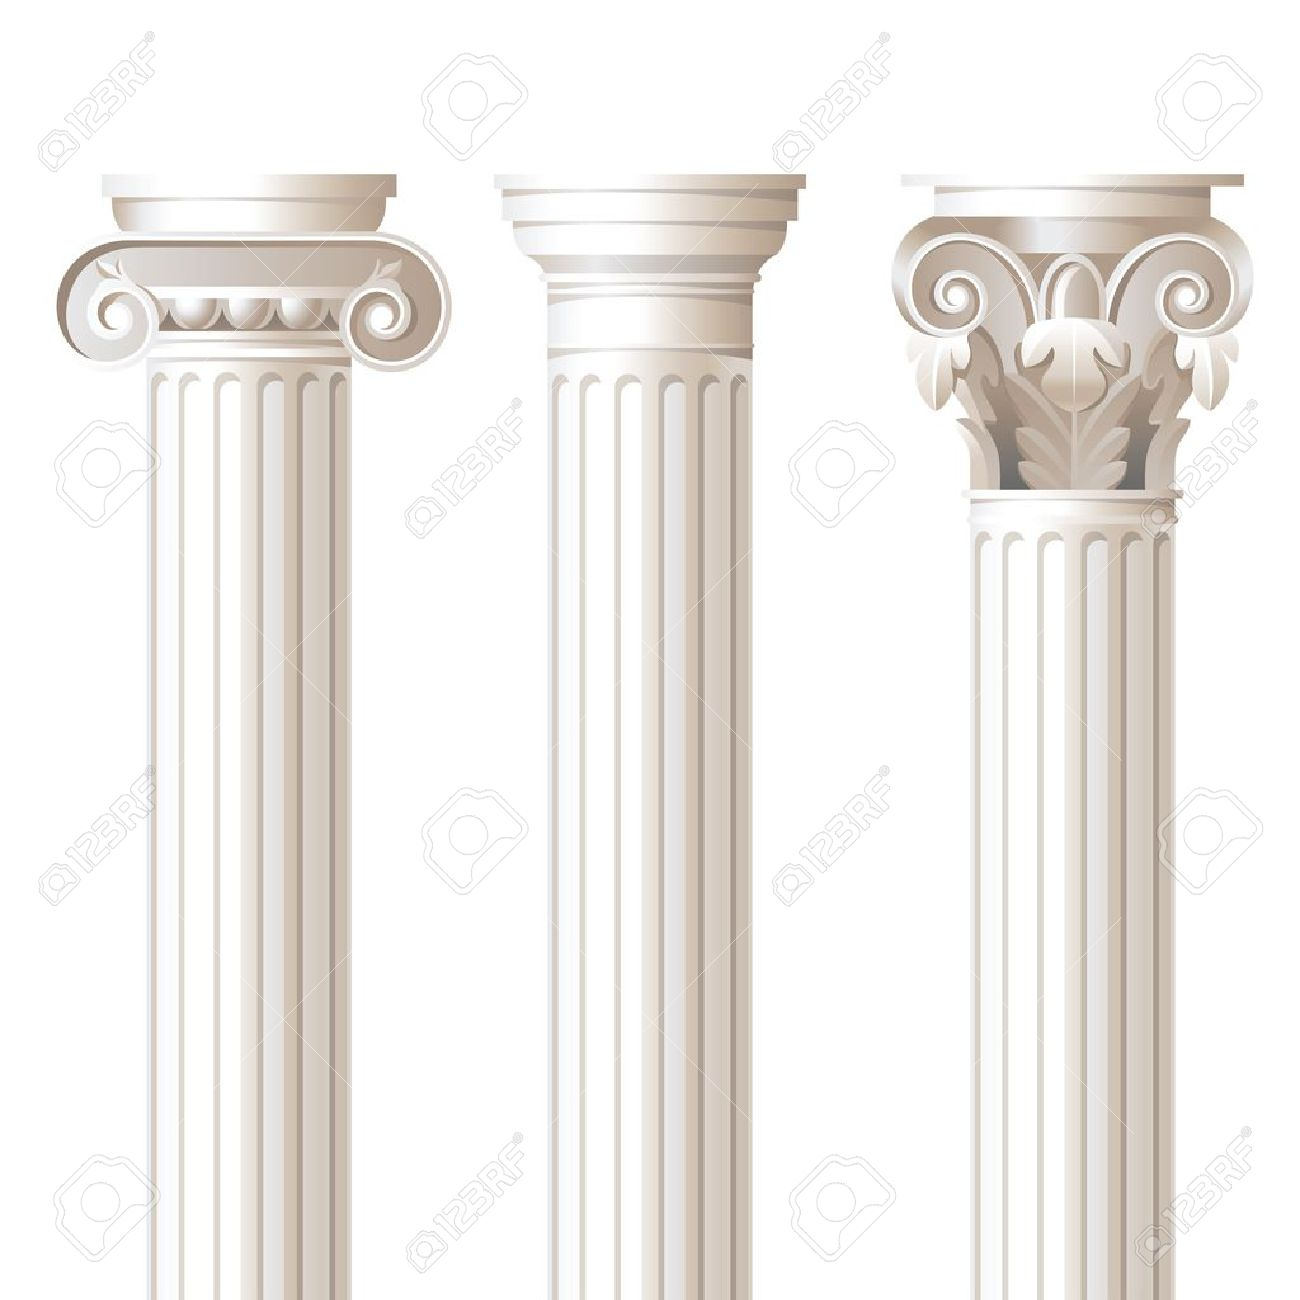 3 Columns In Different Styles.